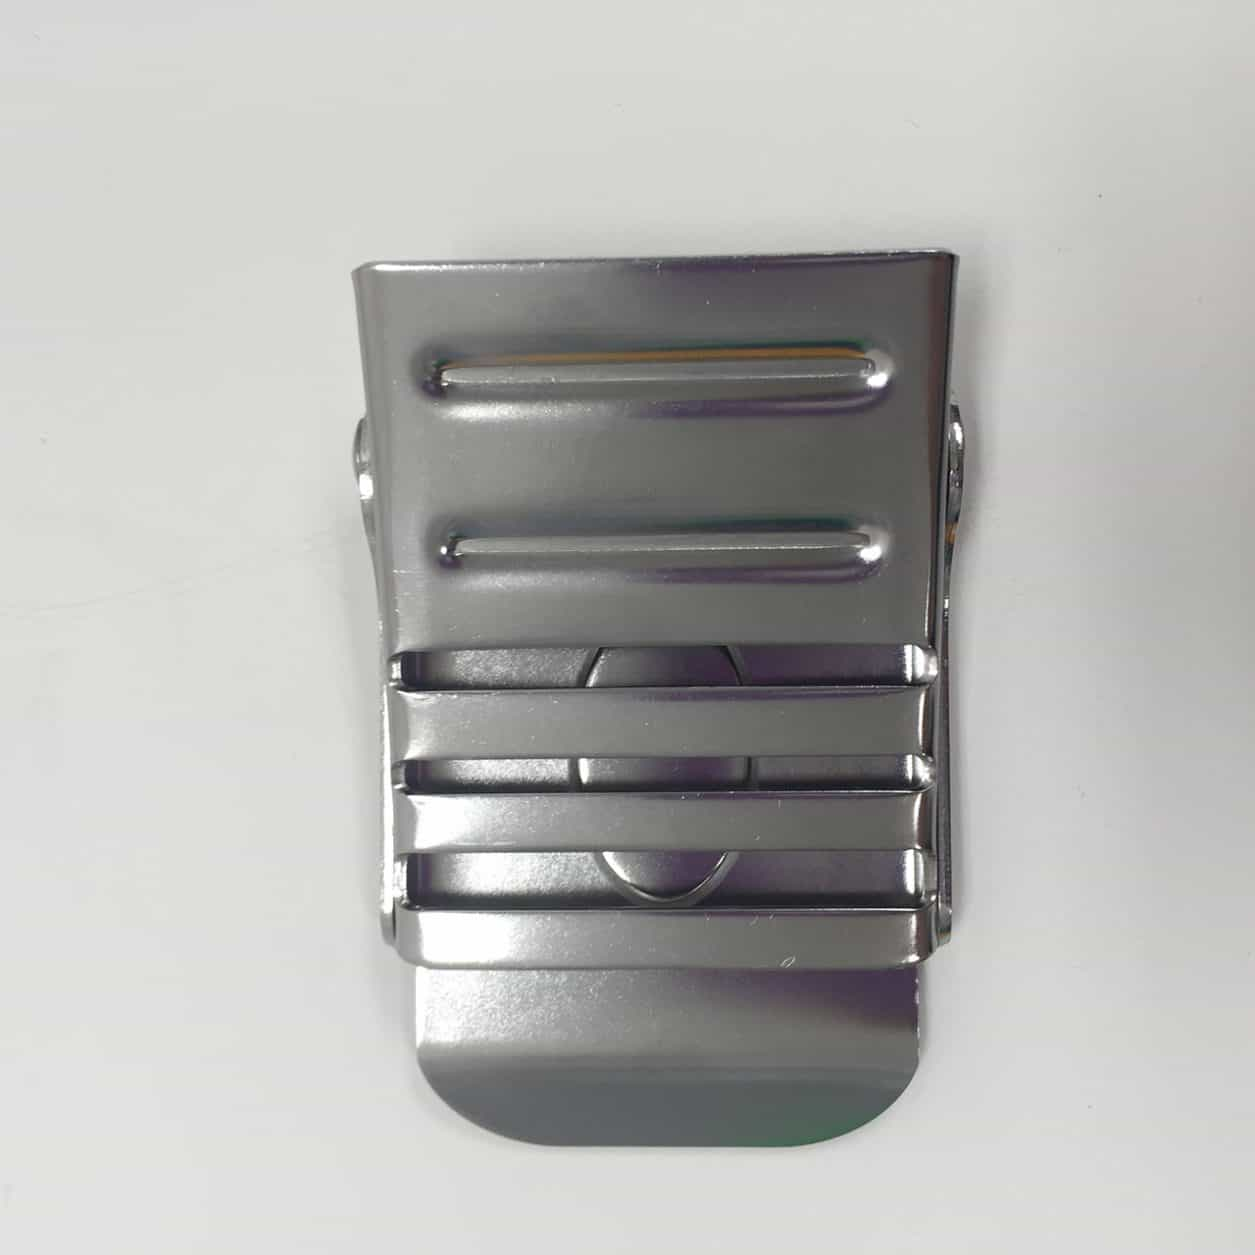 Deluxe Stainless Steel Buckle